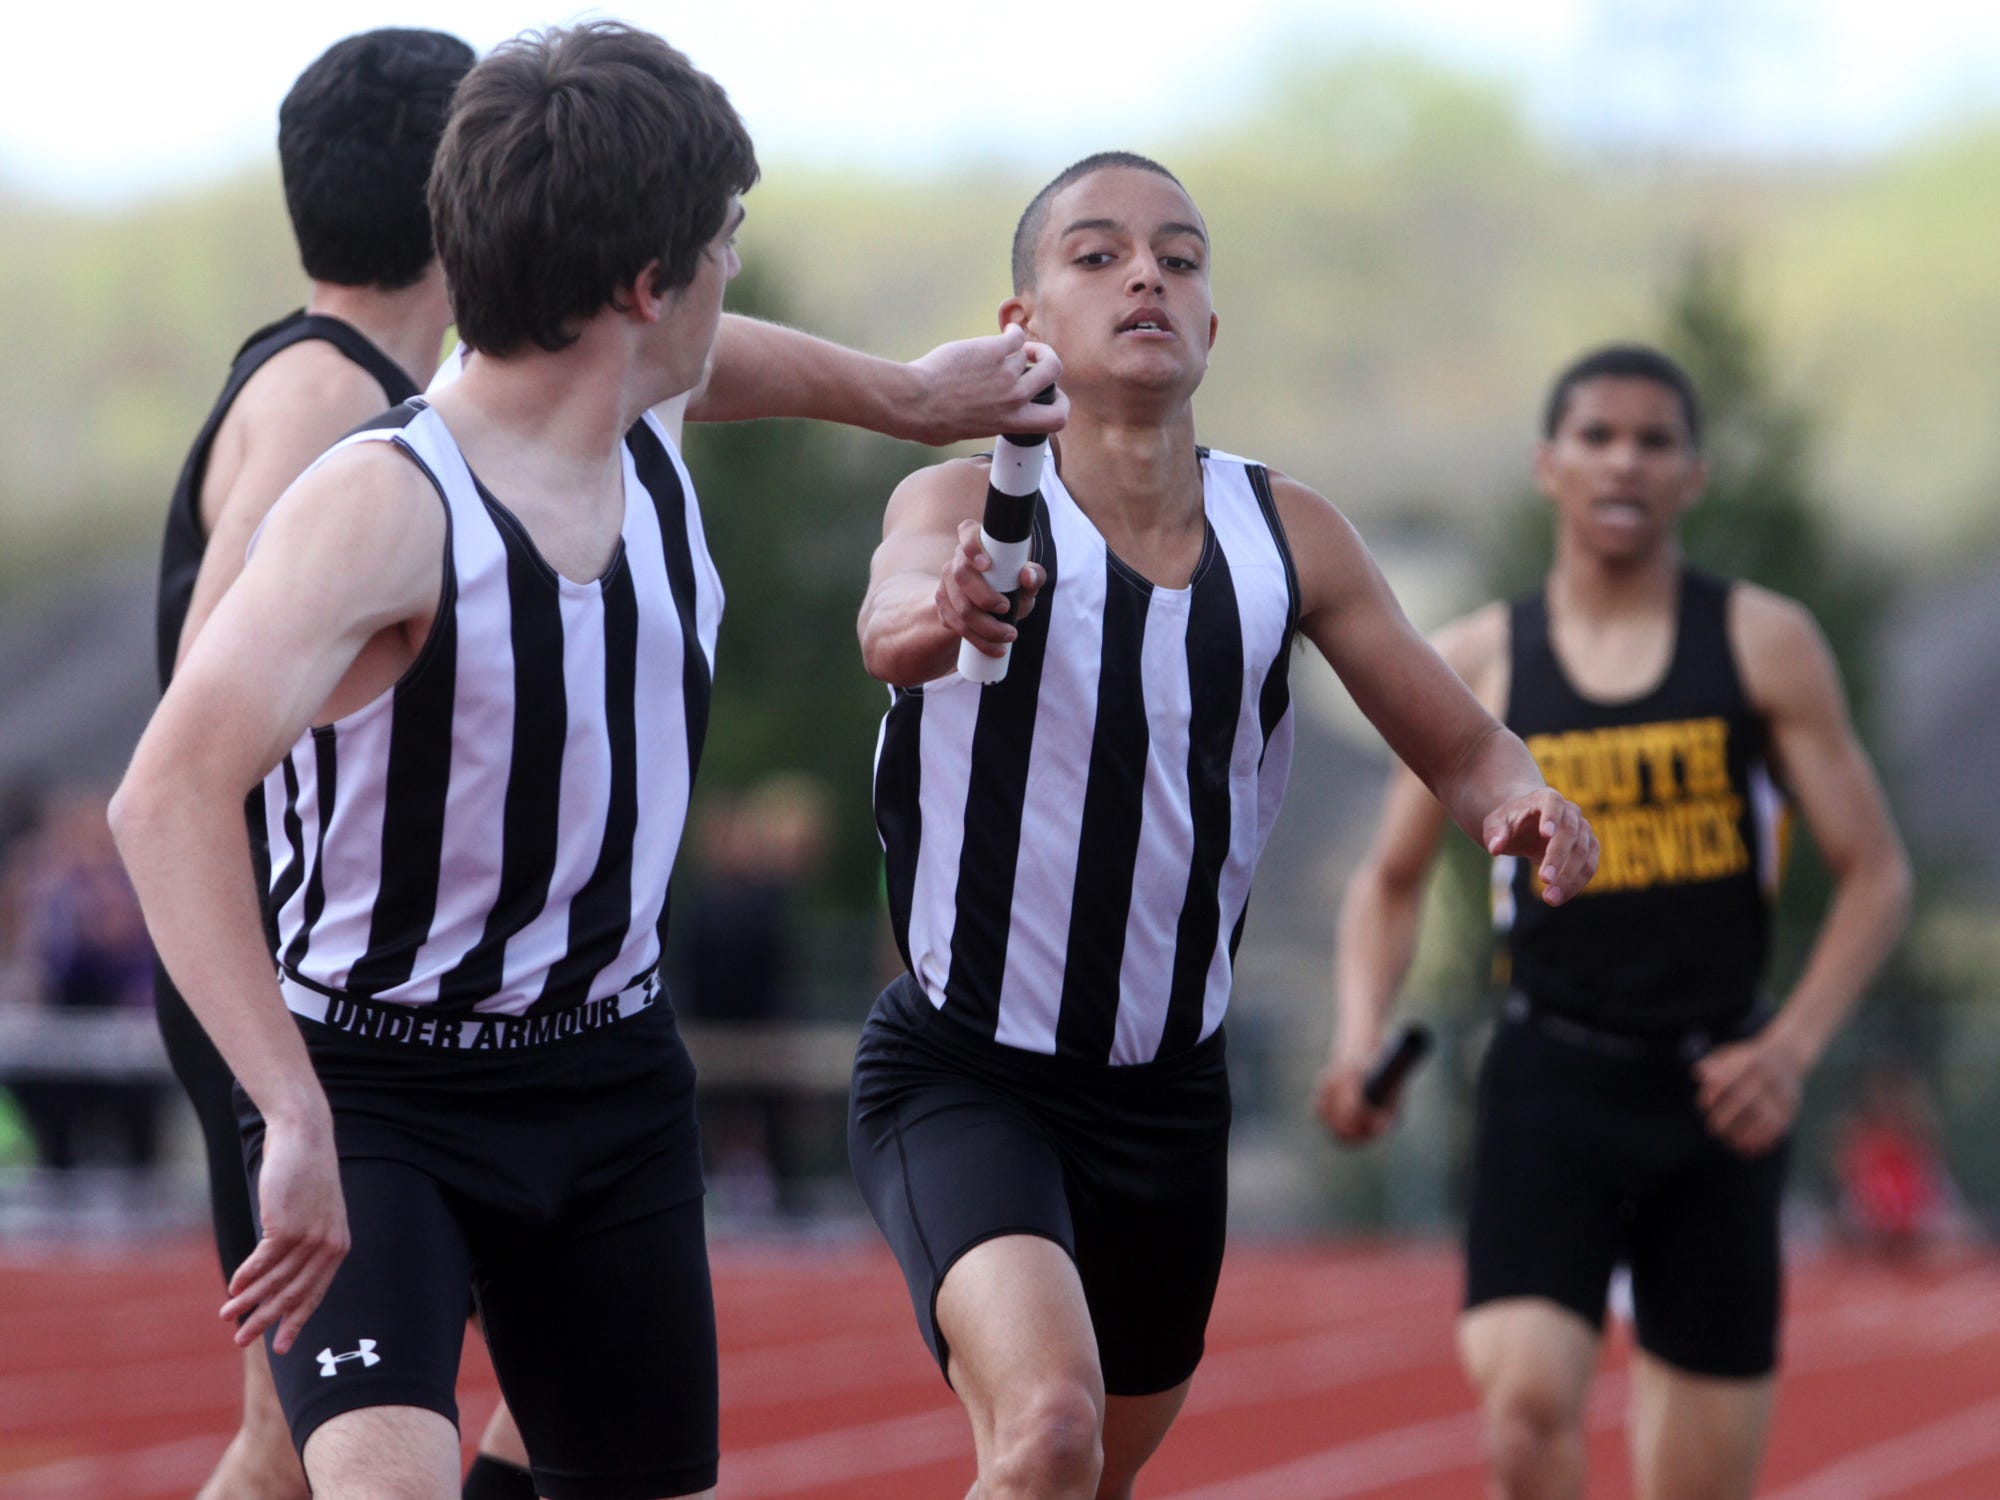 Scott Belton, right, of Old Bridge hands the baton to teammate Ed Zaleck during the 4x800 at the GMC Relays, Tuesday, April 28, 2015, in South Brunswick, NJ.